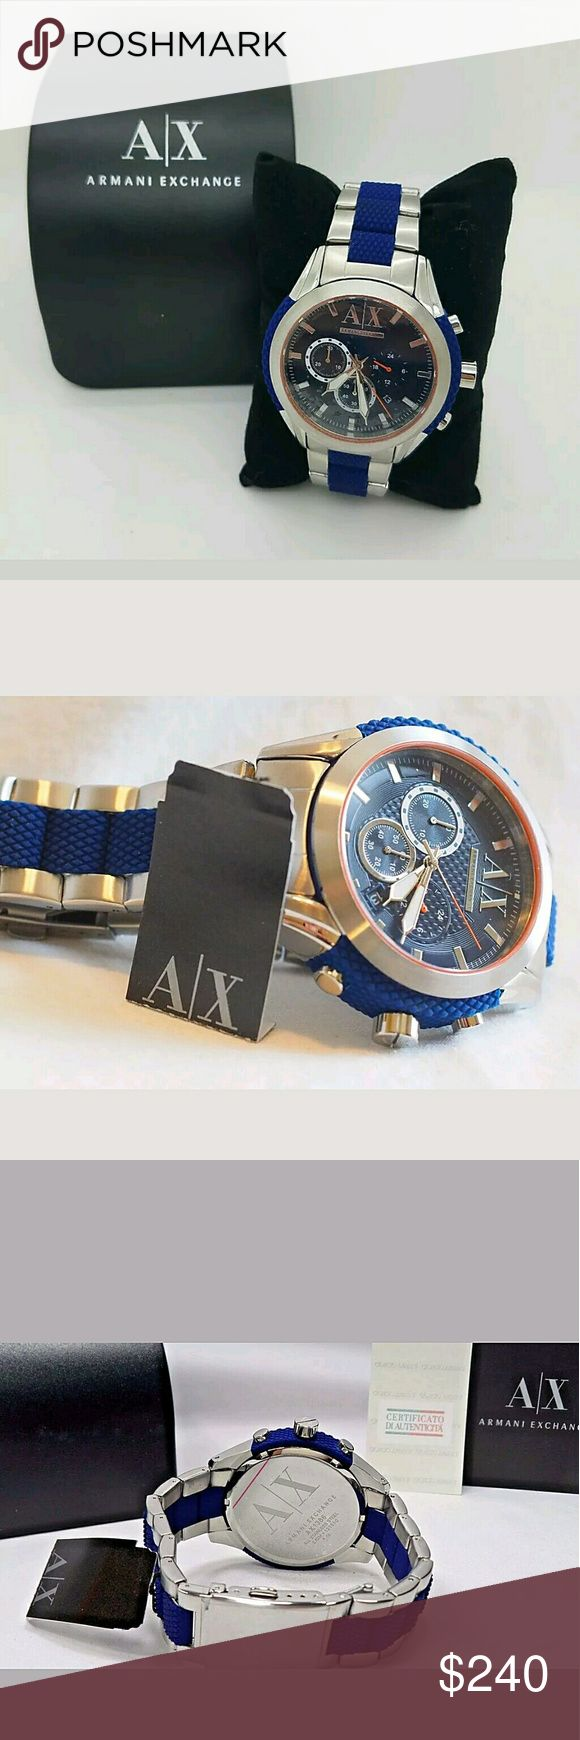 NWT Armani Exchange two-tone Men's watch NWT Armani Exchange Men Two Tone Metal Bracelet With Blue Analog Dial Watch.   Firm price firm price firm price  240.00 . AUTHENTIC WATCH  . AUTHENTIC BOX  . AUTHENTIC MANUAL    SHIPPING  PLEASE ALLOW FEW BUSINESS DAYS FOR ME TO SHIPPED IT OFF.I HAVE TO GET IT FROM MY STORE.    THANK YOU FOR YOUR UNDERSTANDING. Armani Exchange  Accessories Watches